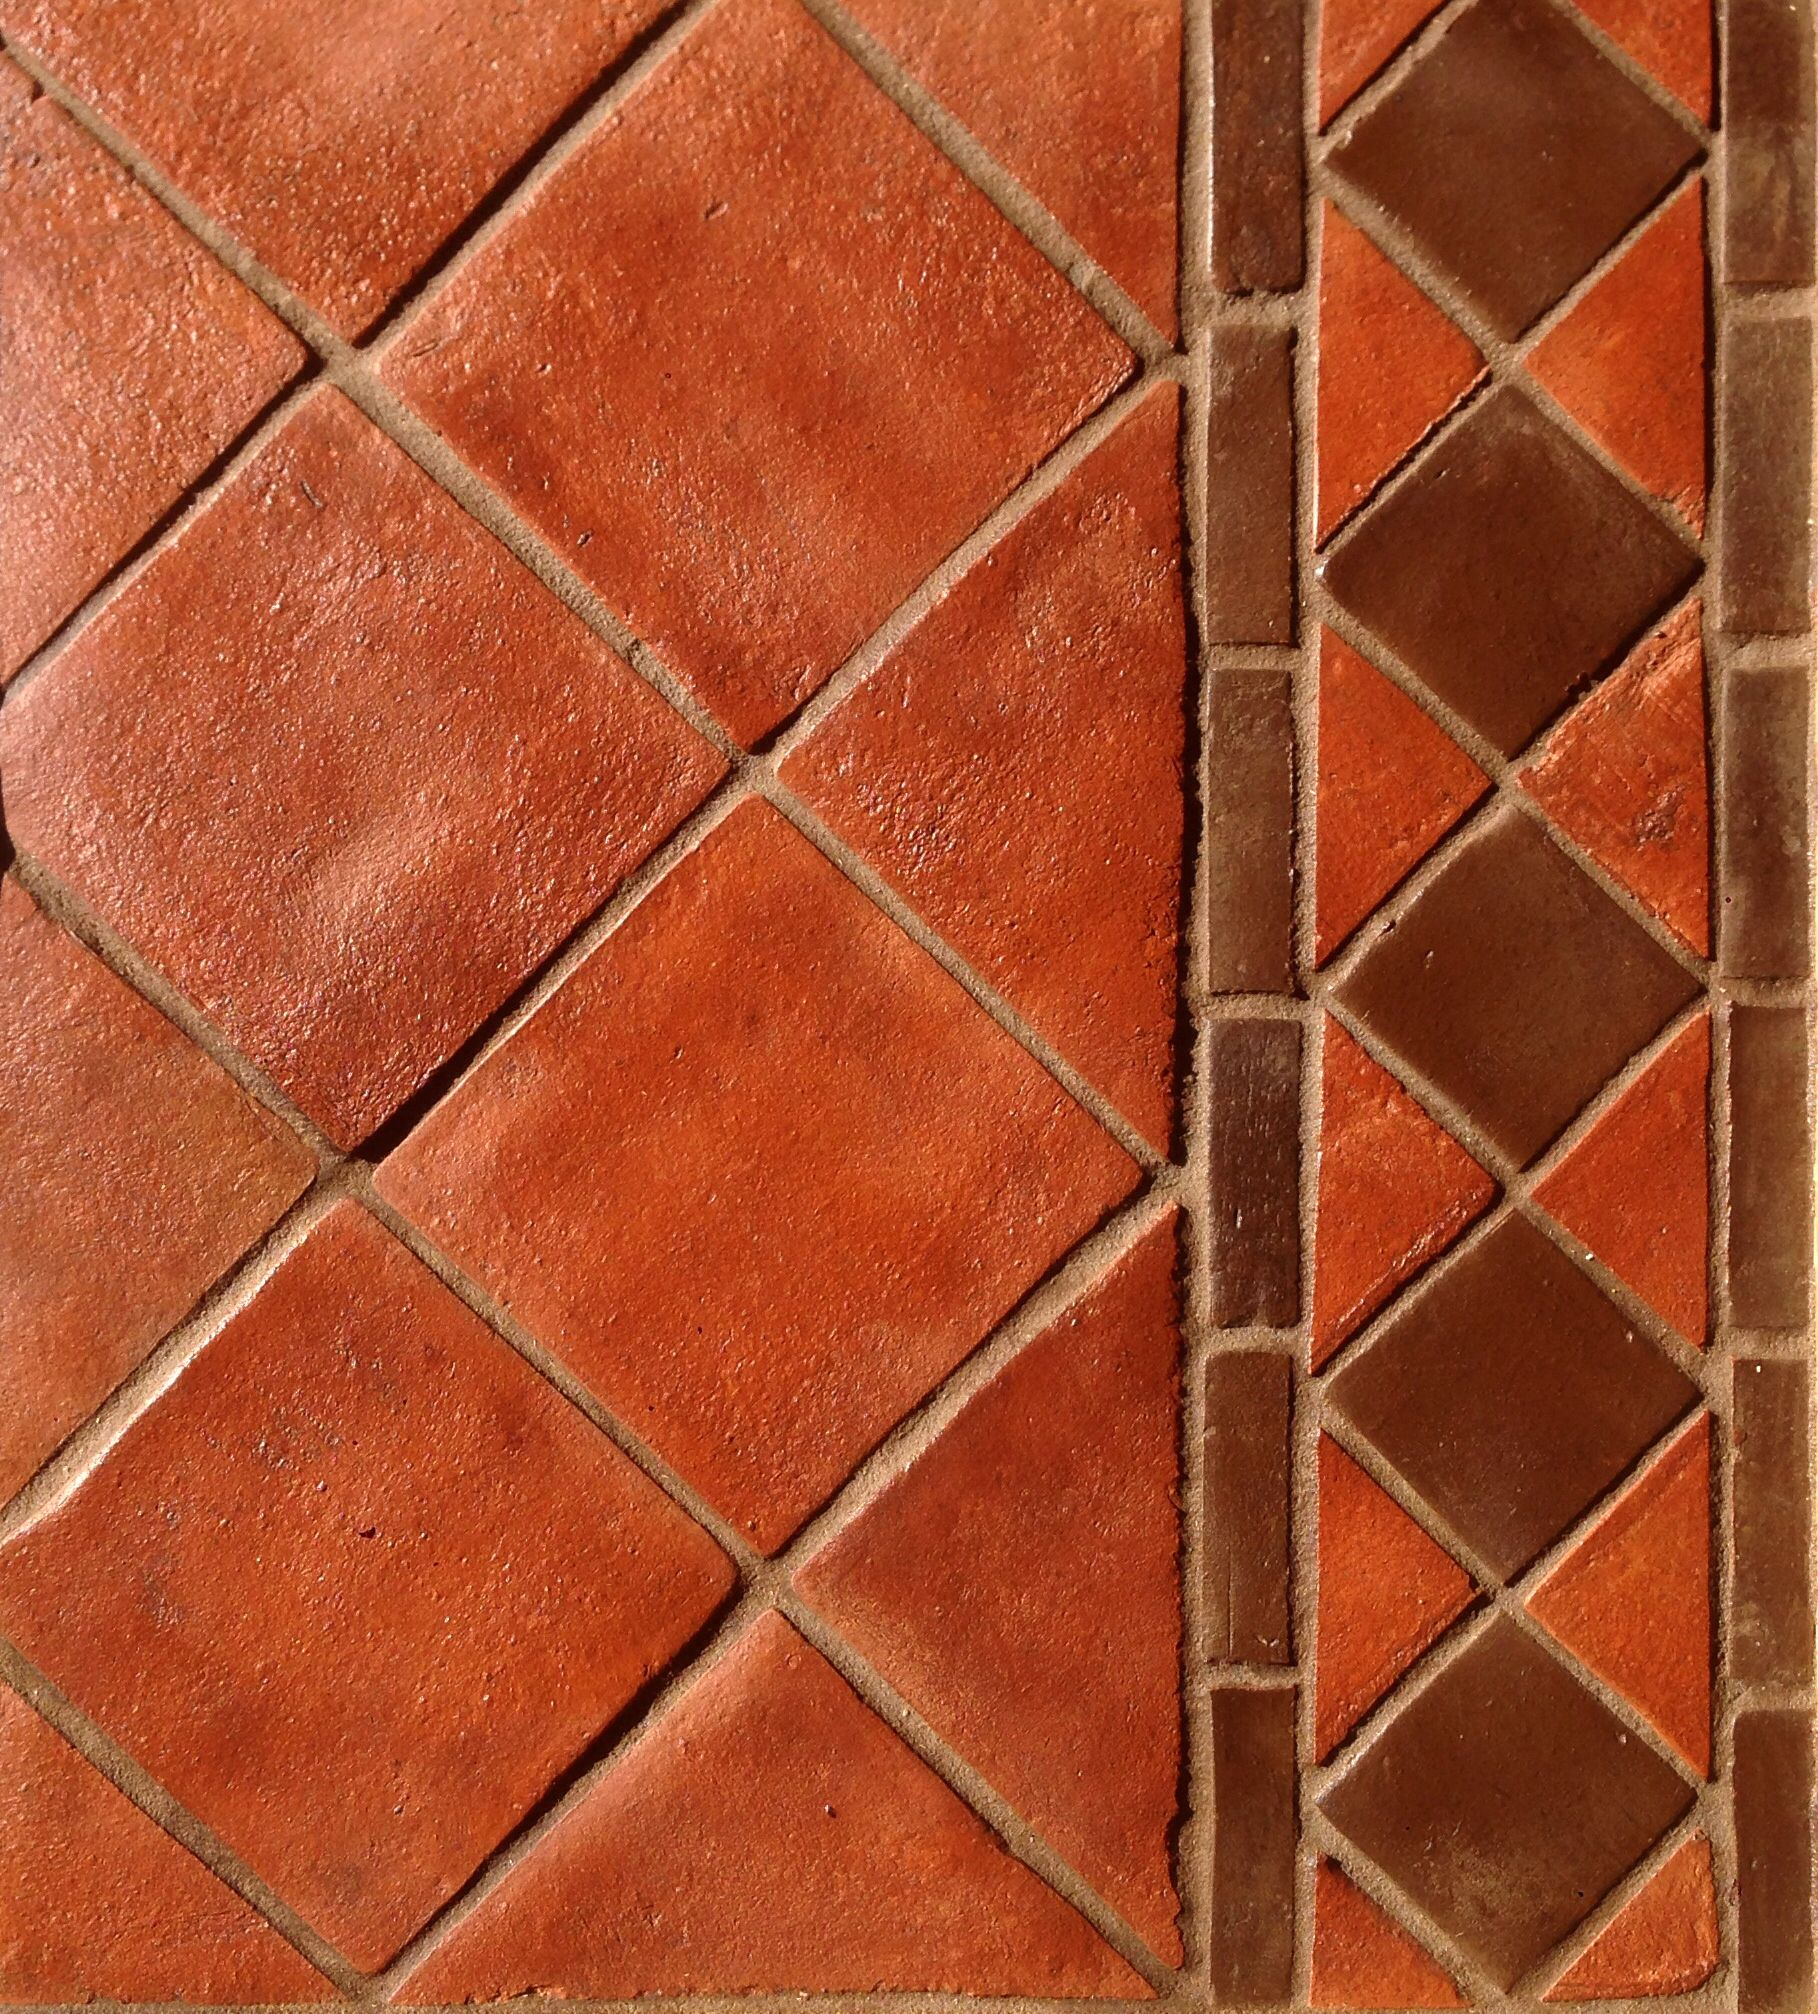 Handmade terracotta floor tiles from spicer tiles terracotta handmade terracotta floor tiles from spicer tiles dailygadgetfo Images